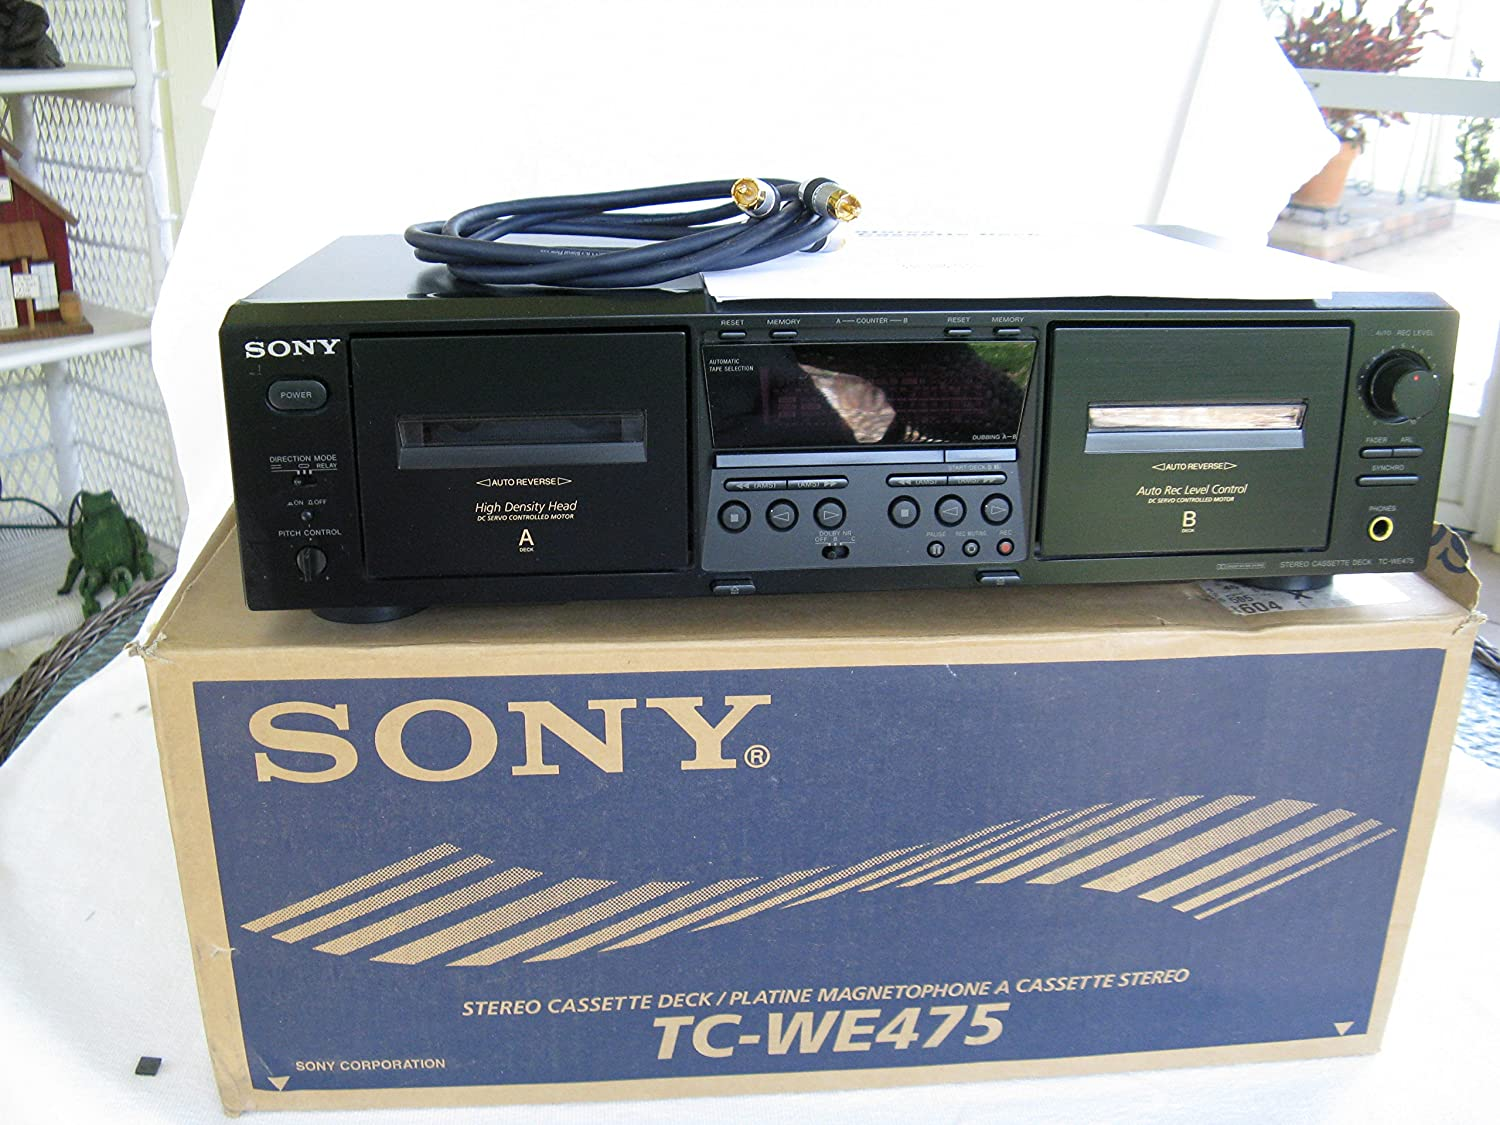 Sony TC-WE 475 Dual Stereo Cassette Deck Player Recorder Includes ...